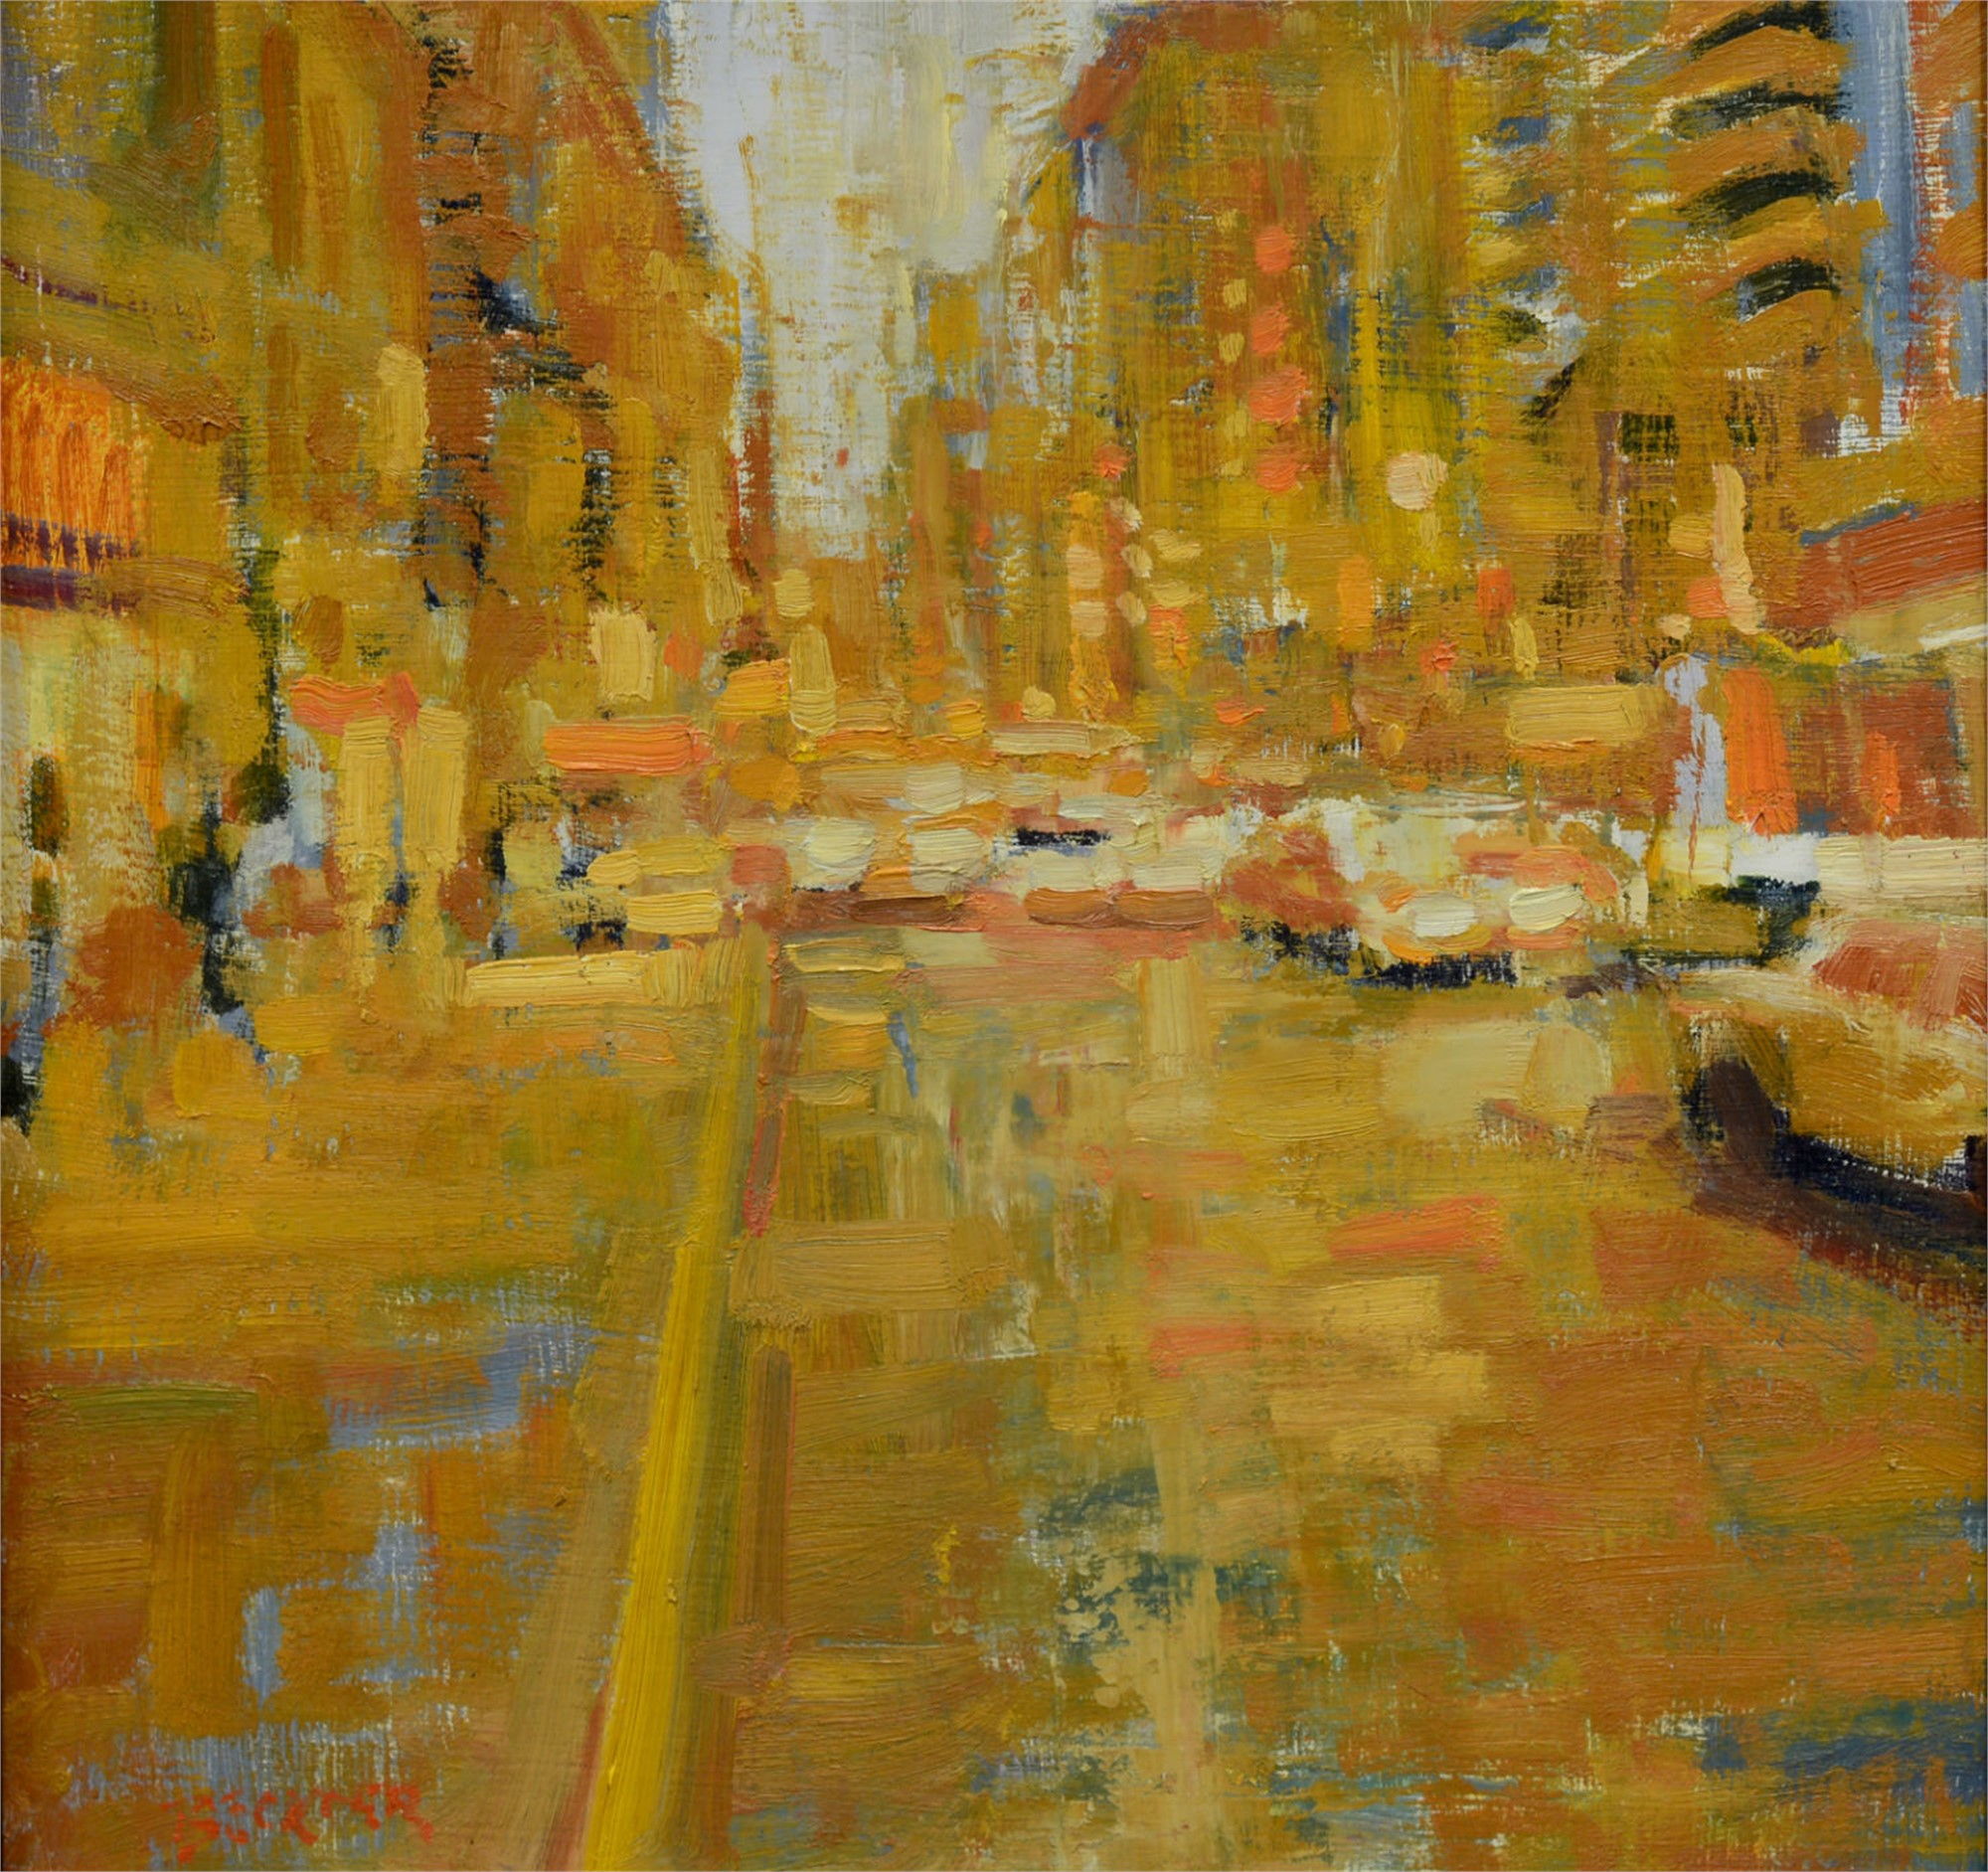 City in Yellow by Jim Beckner